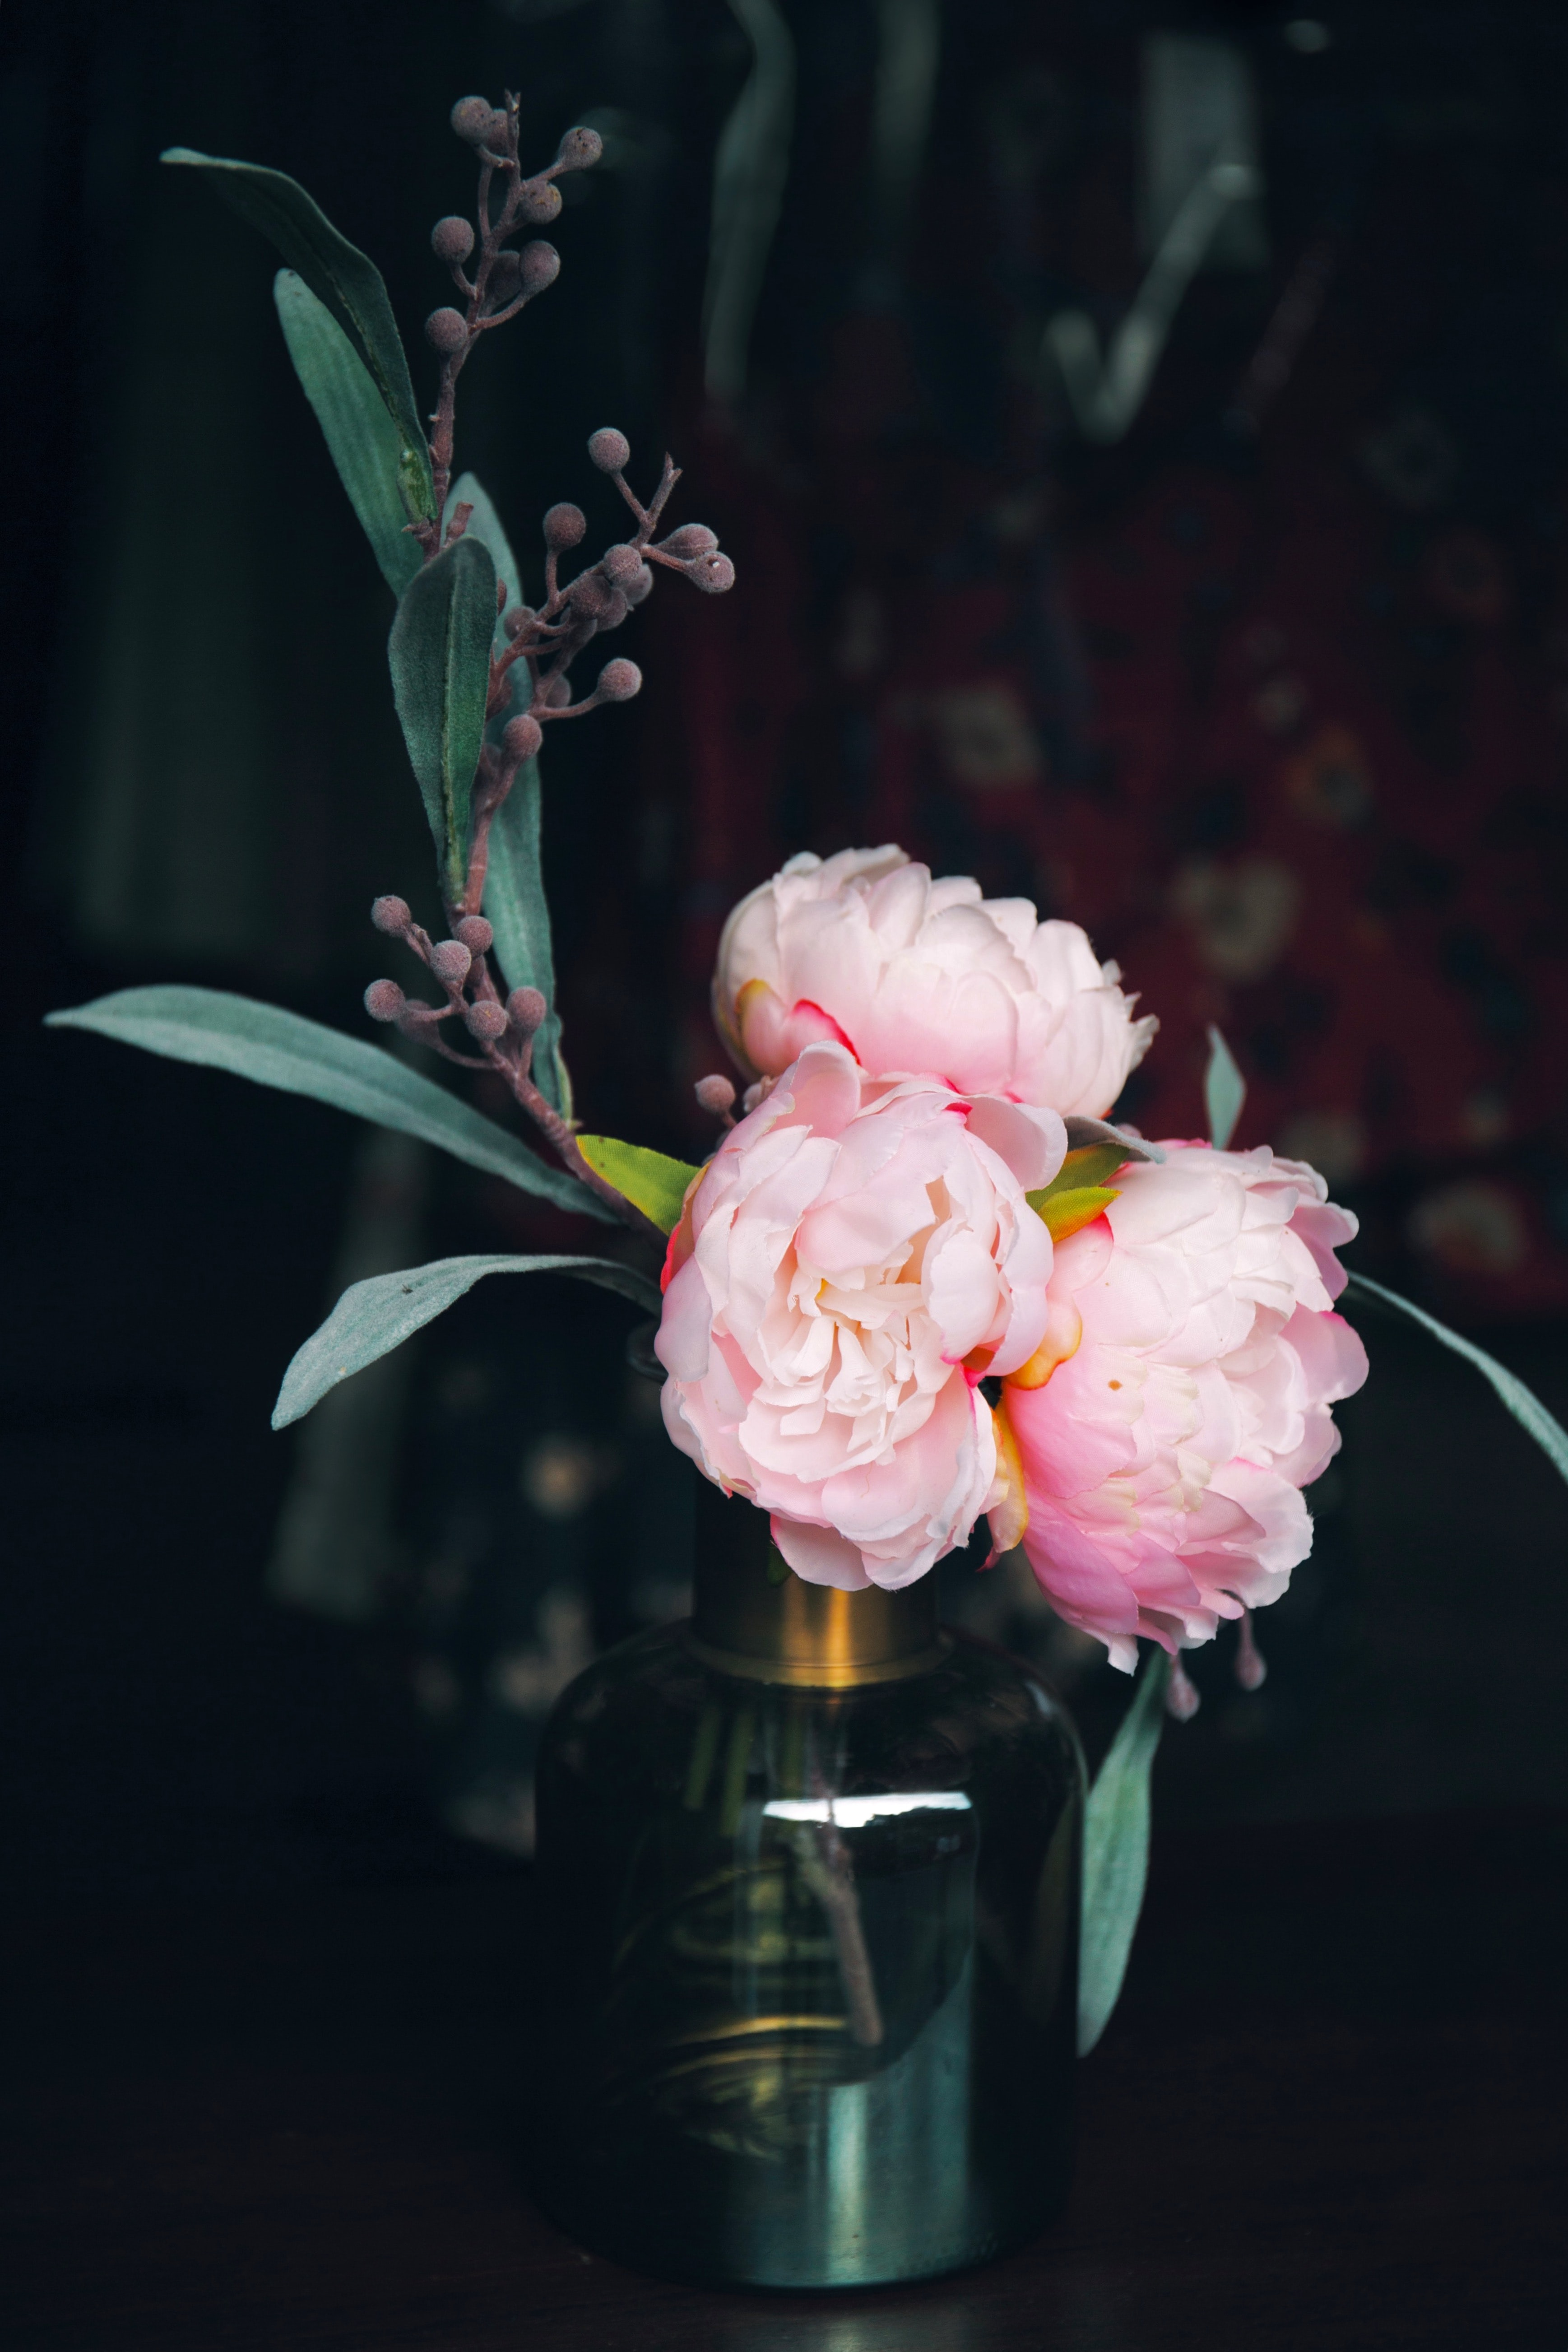 pink petaled flower in the vase